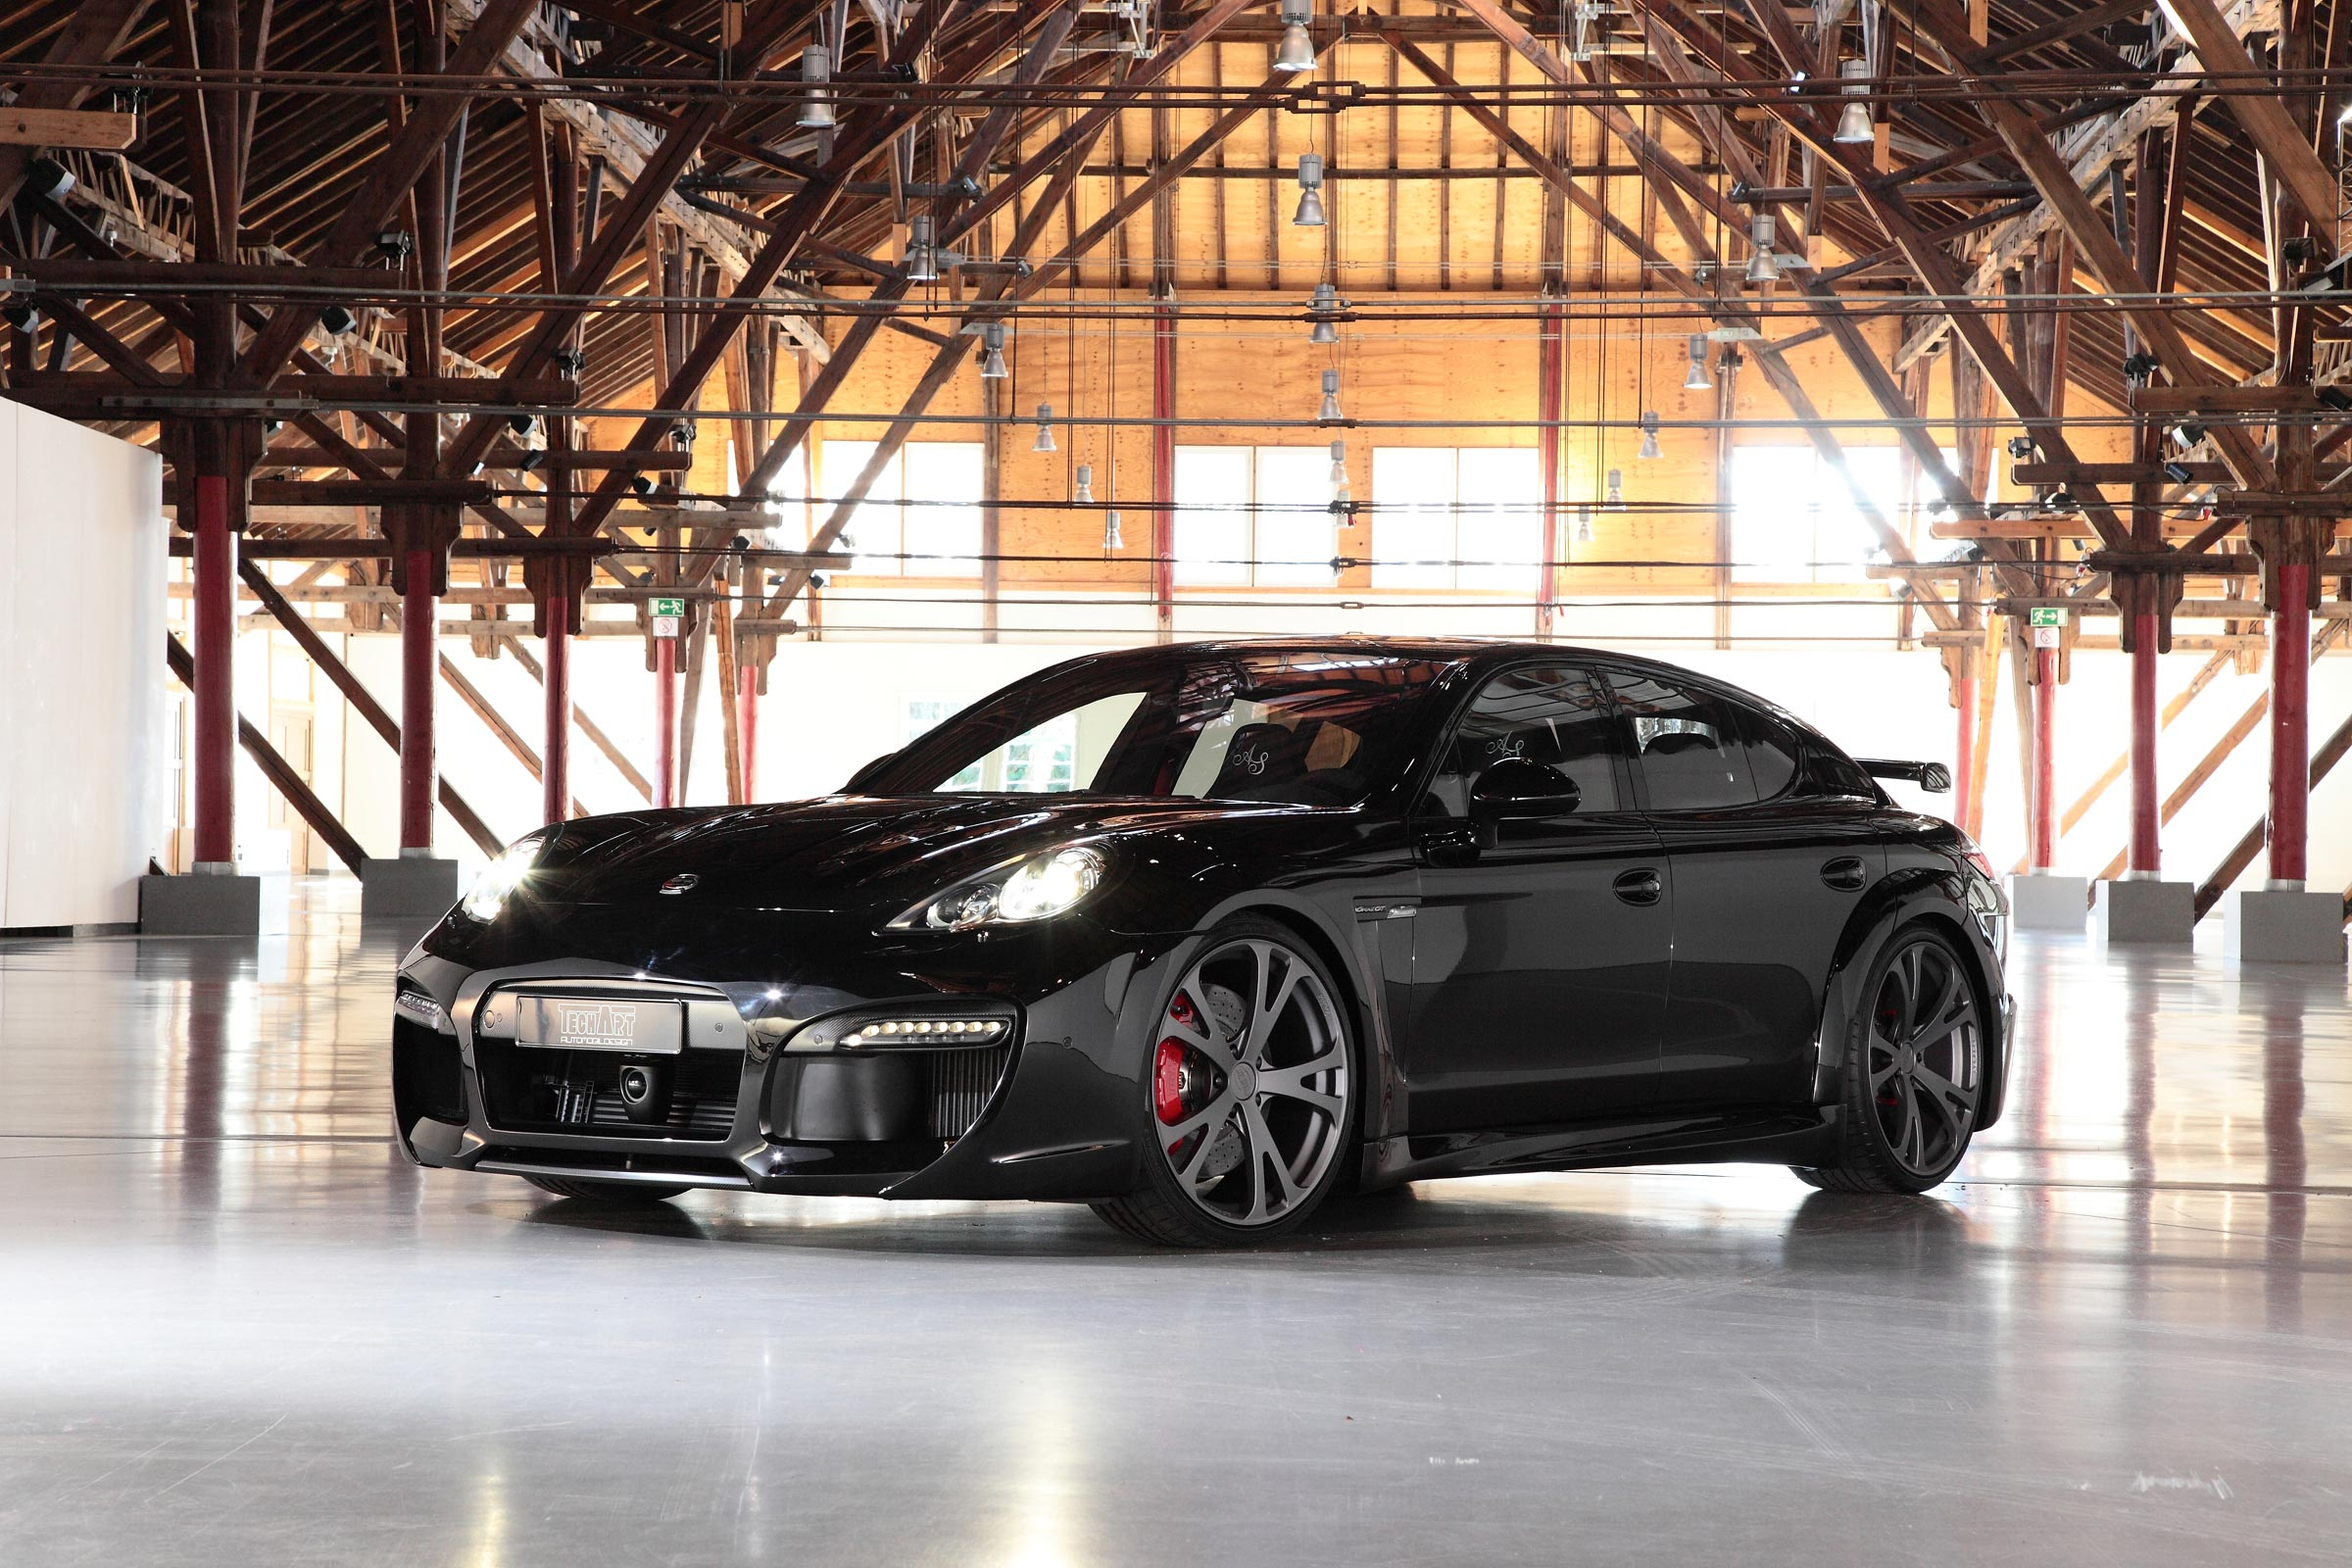 New Carbon Kits Available for the TechArt GrandGT Panamera